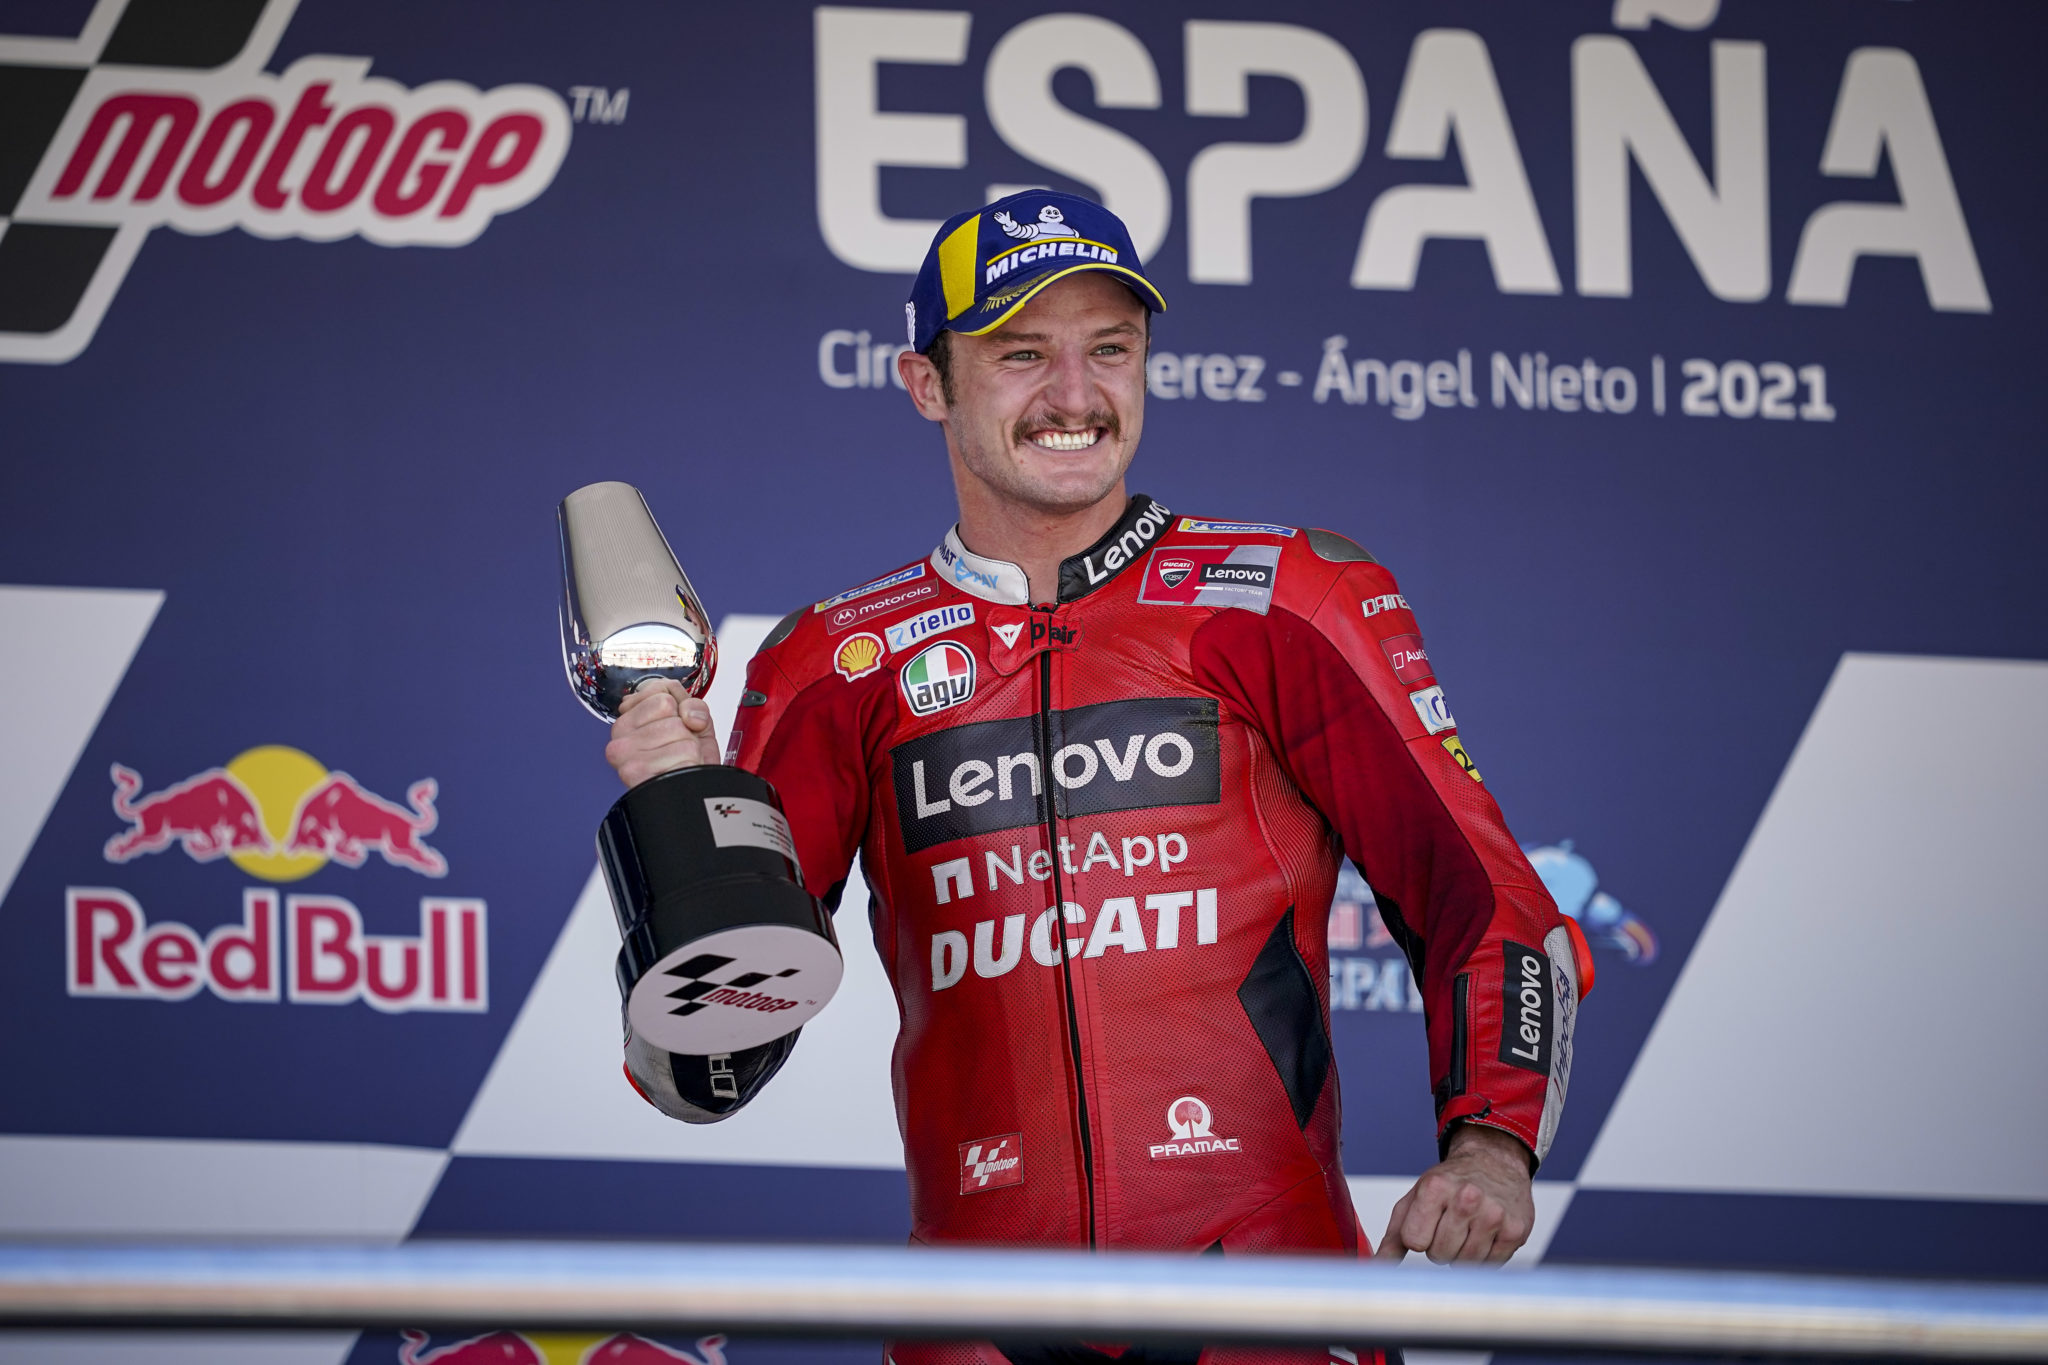 Ducati's Daredevil Jack Miller records his first ever victory with the team.